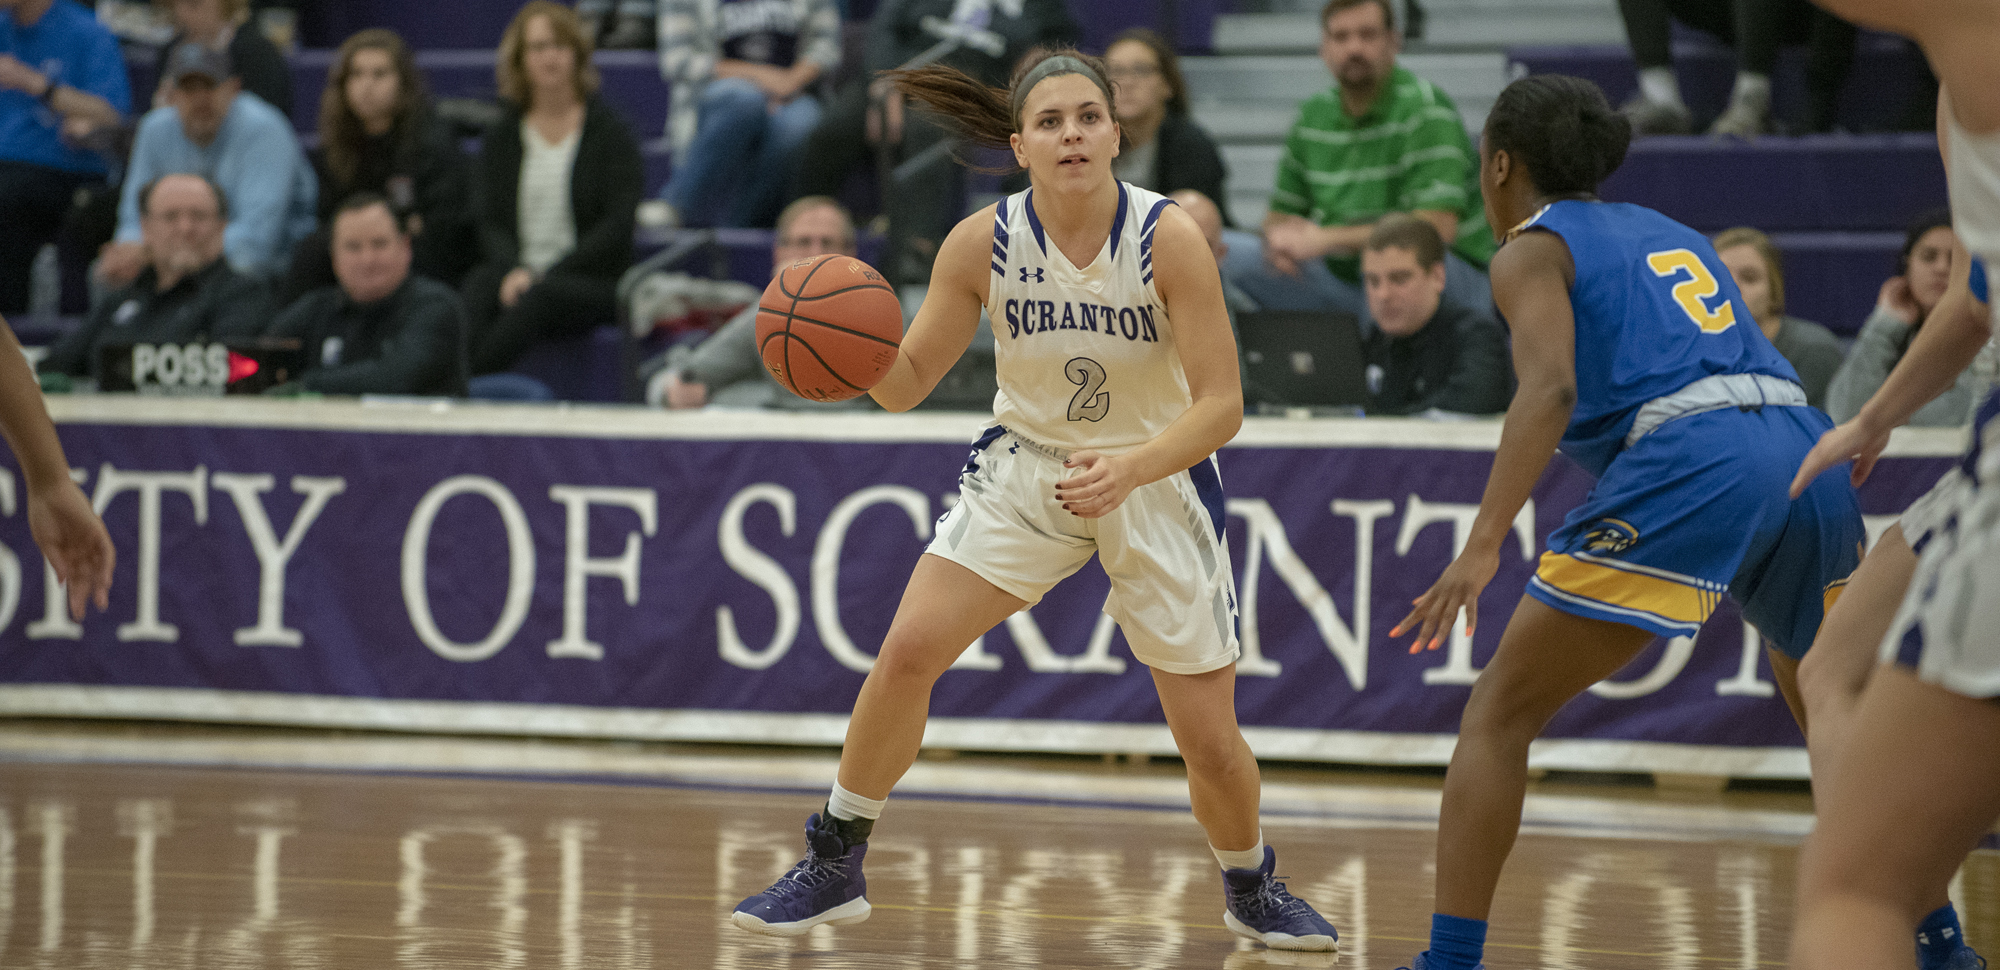 No. 3 Lady Royals Pull Away From Ursinus in Season-Opening 75-64 Win